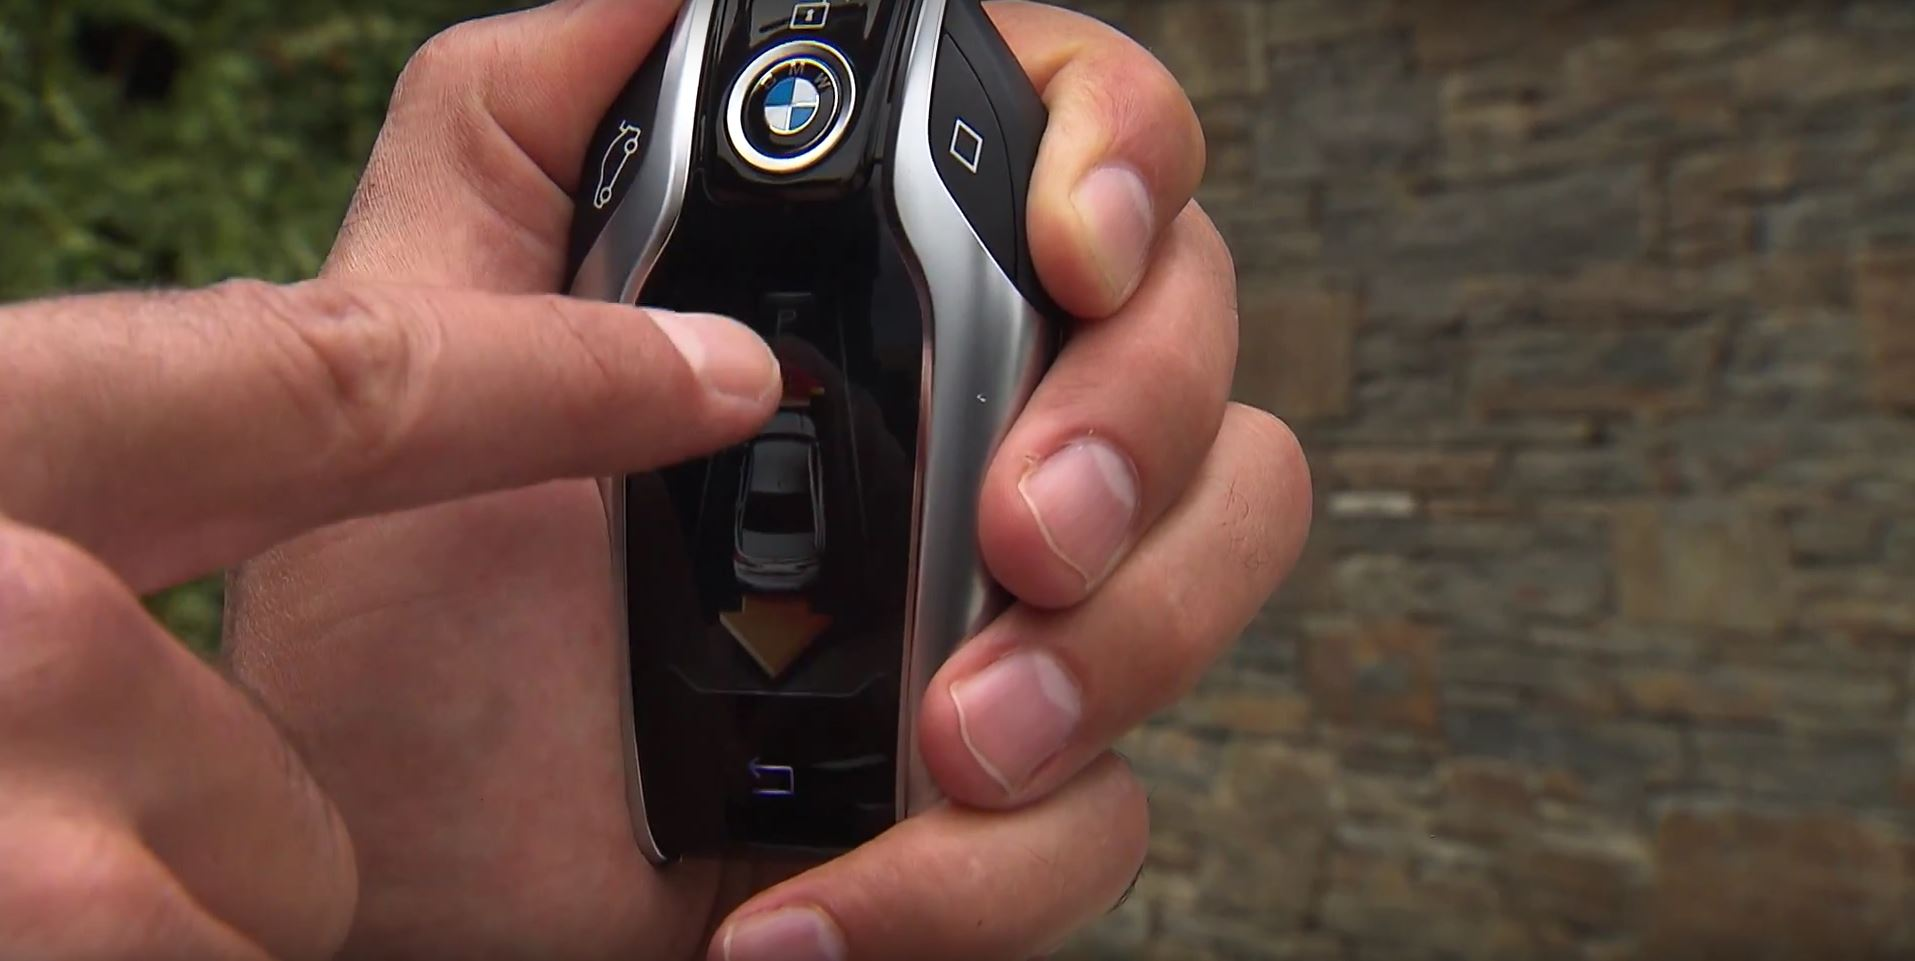 2016 BMW 7 Series Parking Itself Using The Key Fob Is Mesmerizing